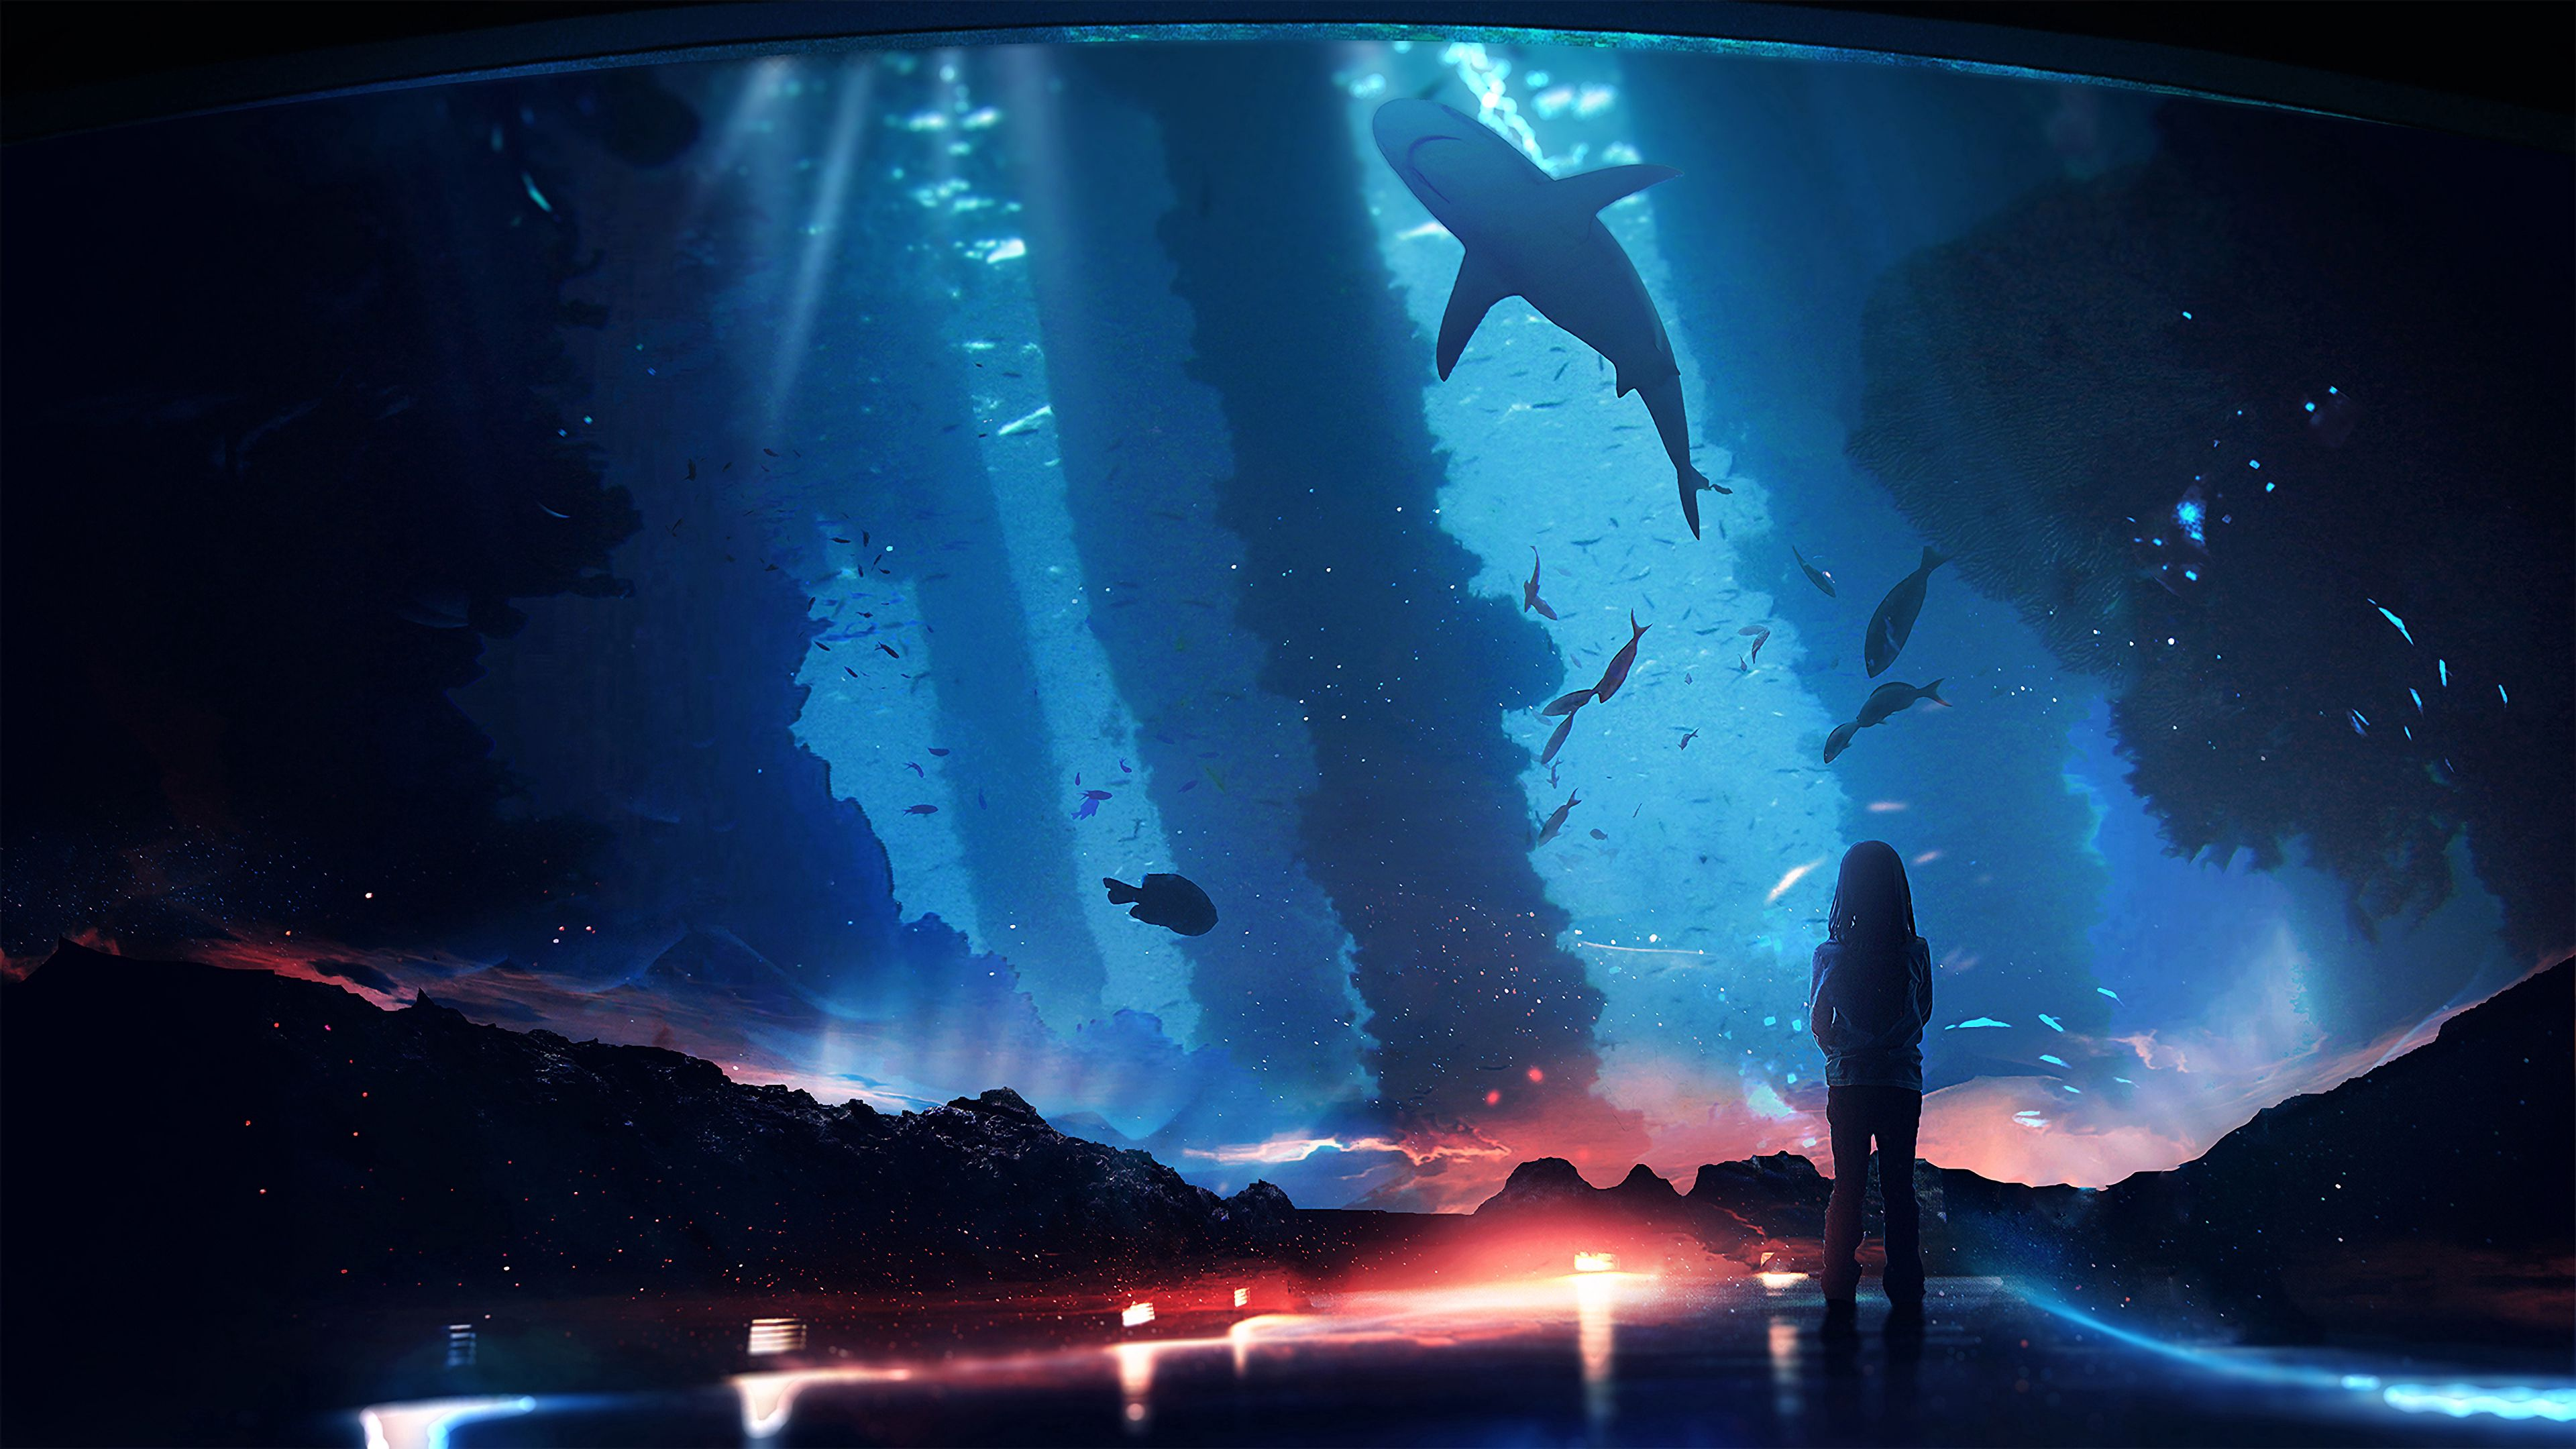 150232 download wallpaper Art, Silhouette, Aquarium, Dark, Backlight, Illumination, Fishes screensavers and pictures for free